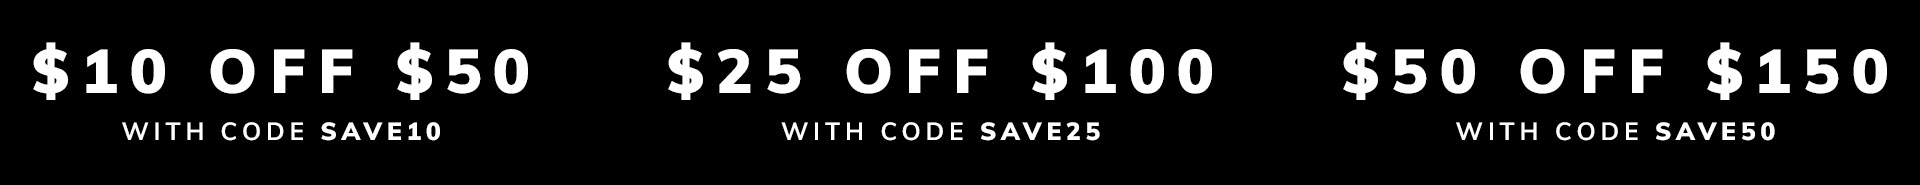 $10 off $50 | $25 off $100 | $50 off $150